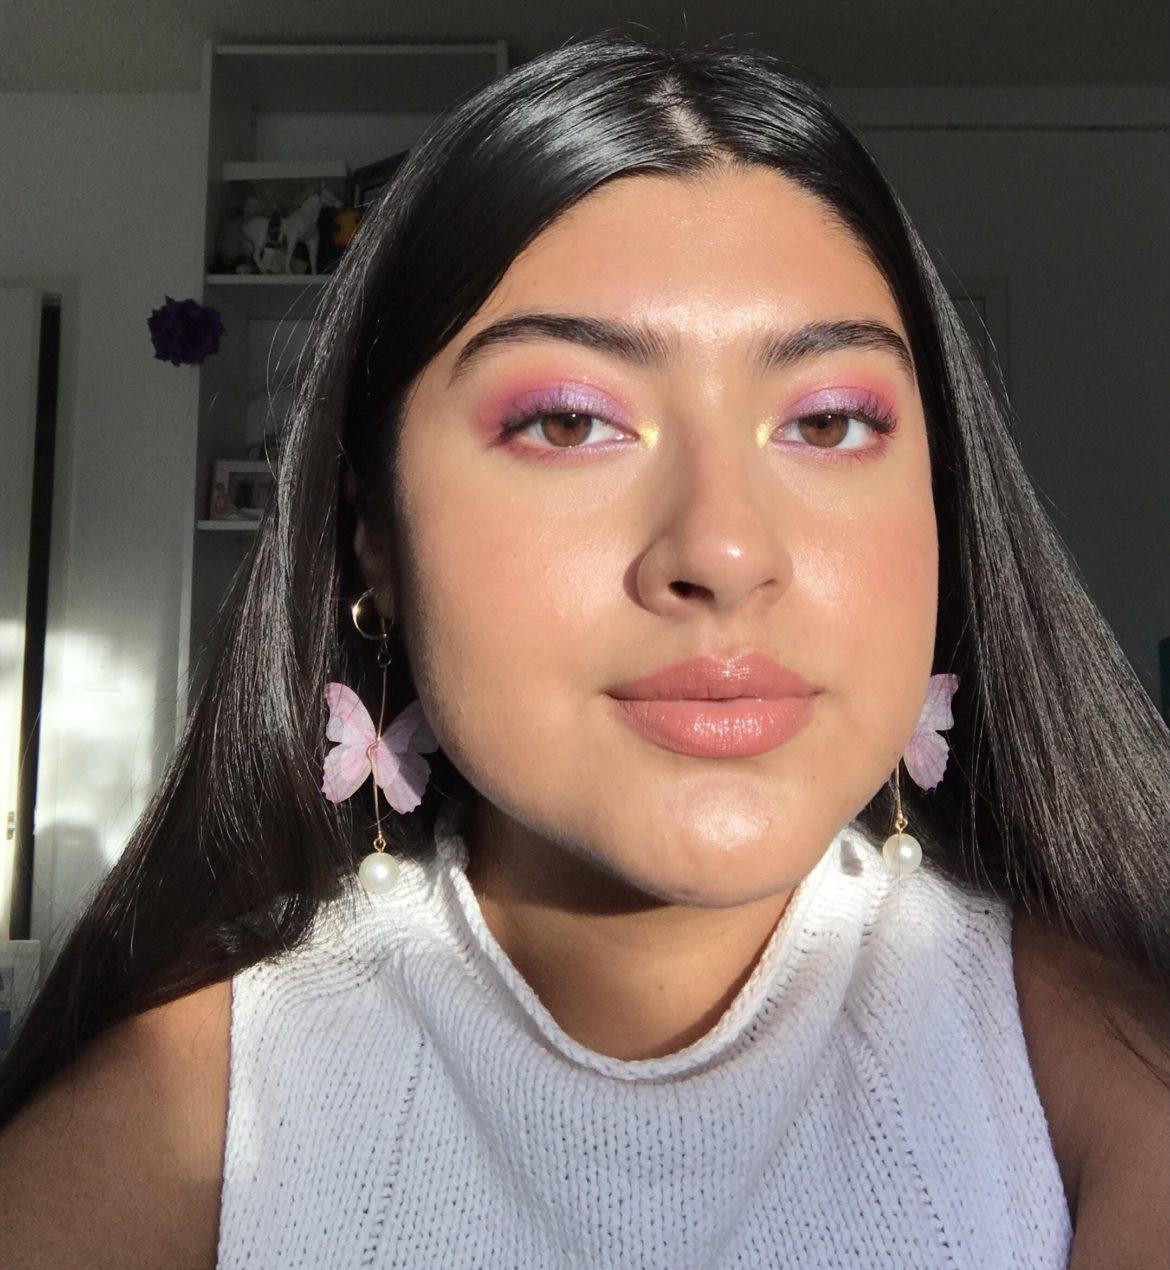 latina girl with makeup